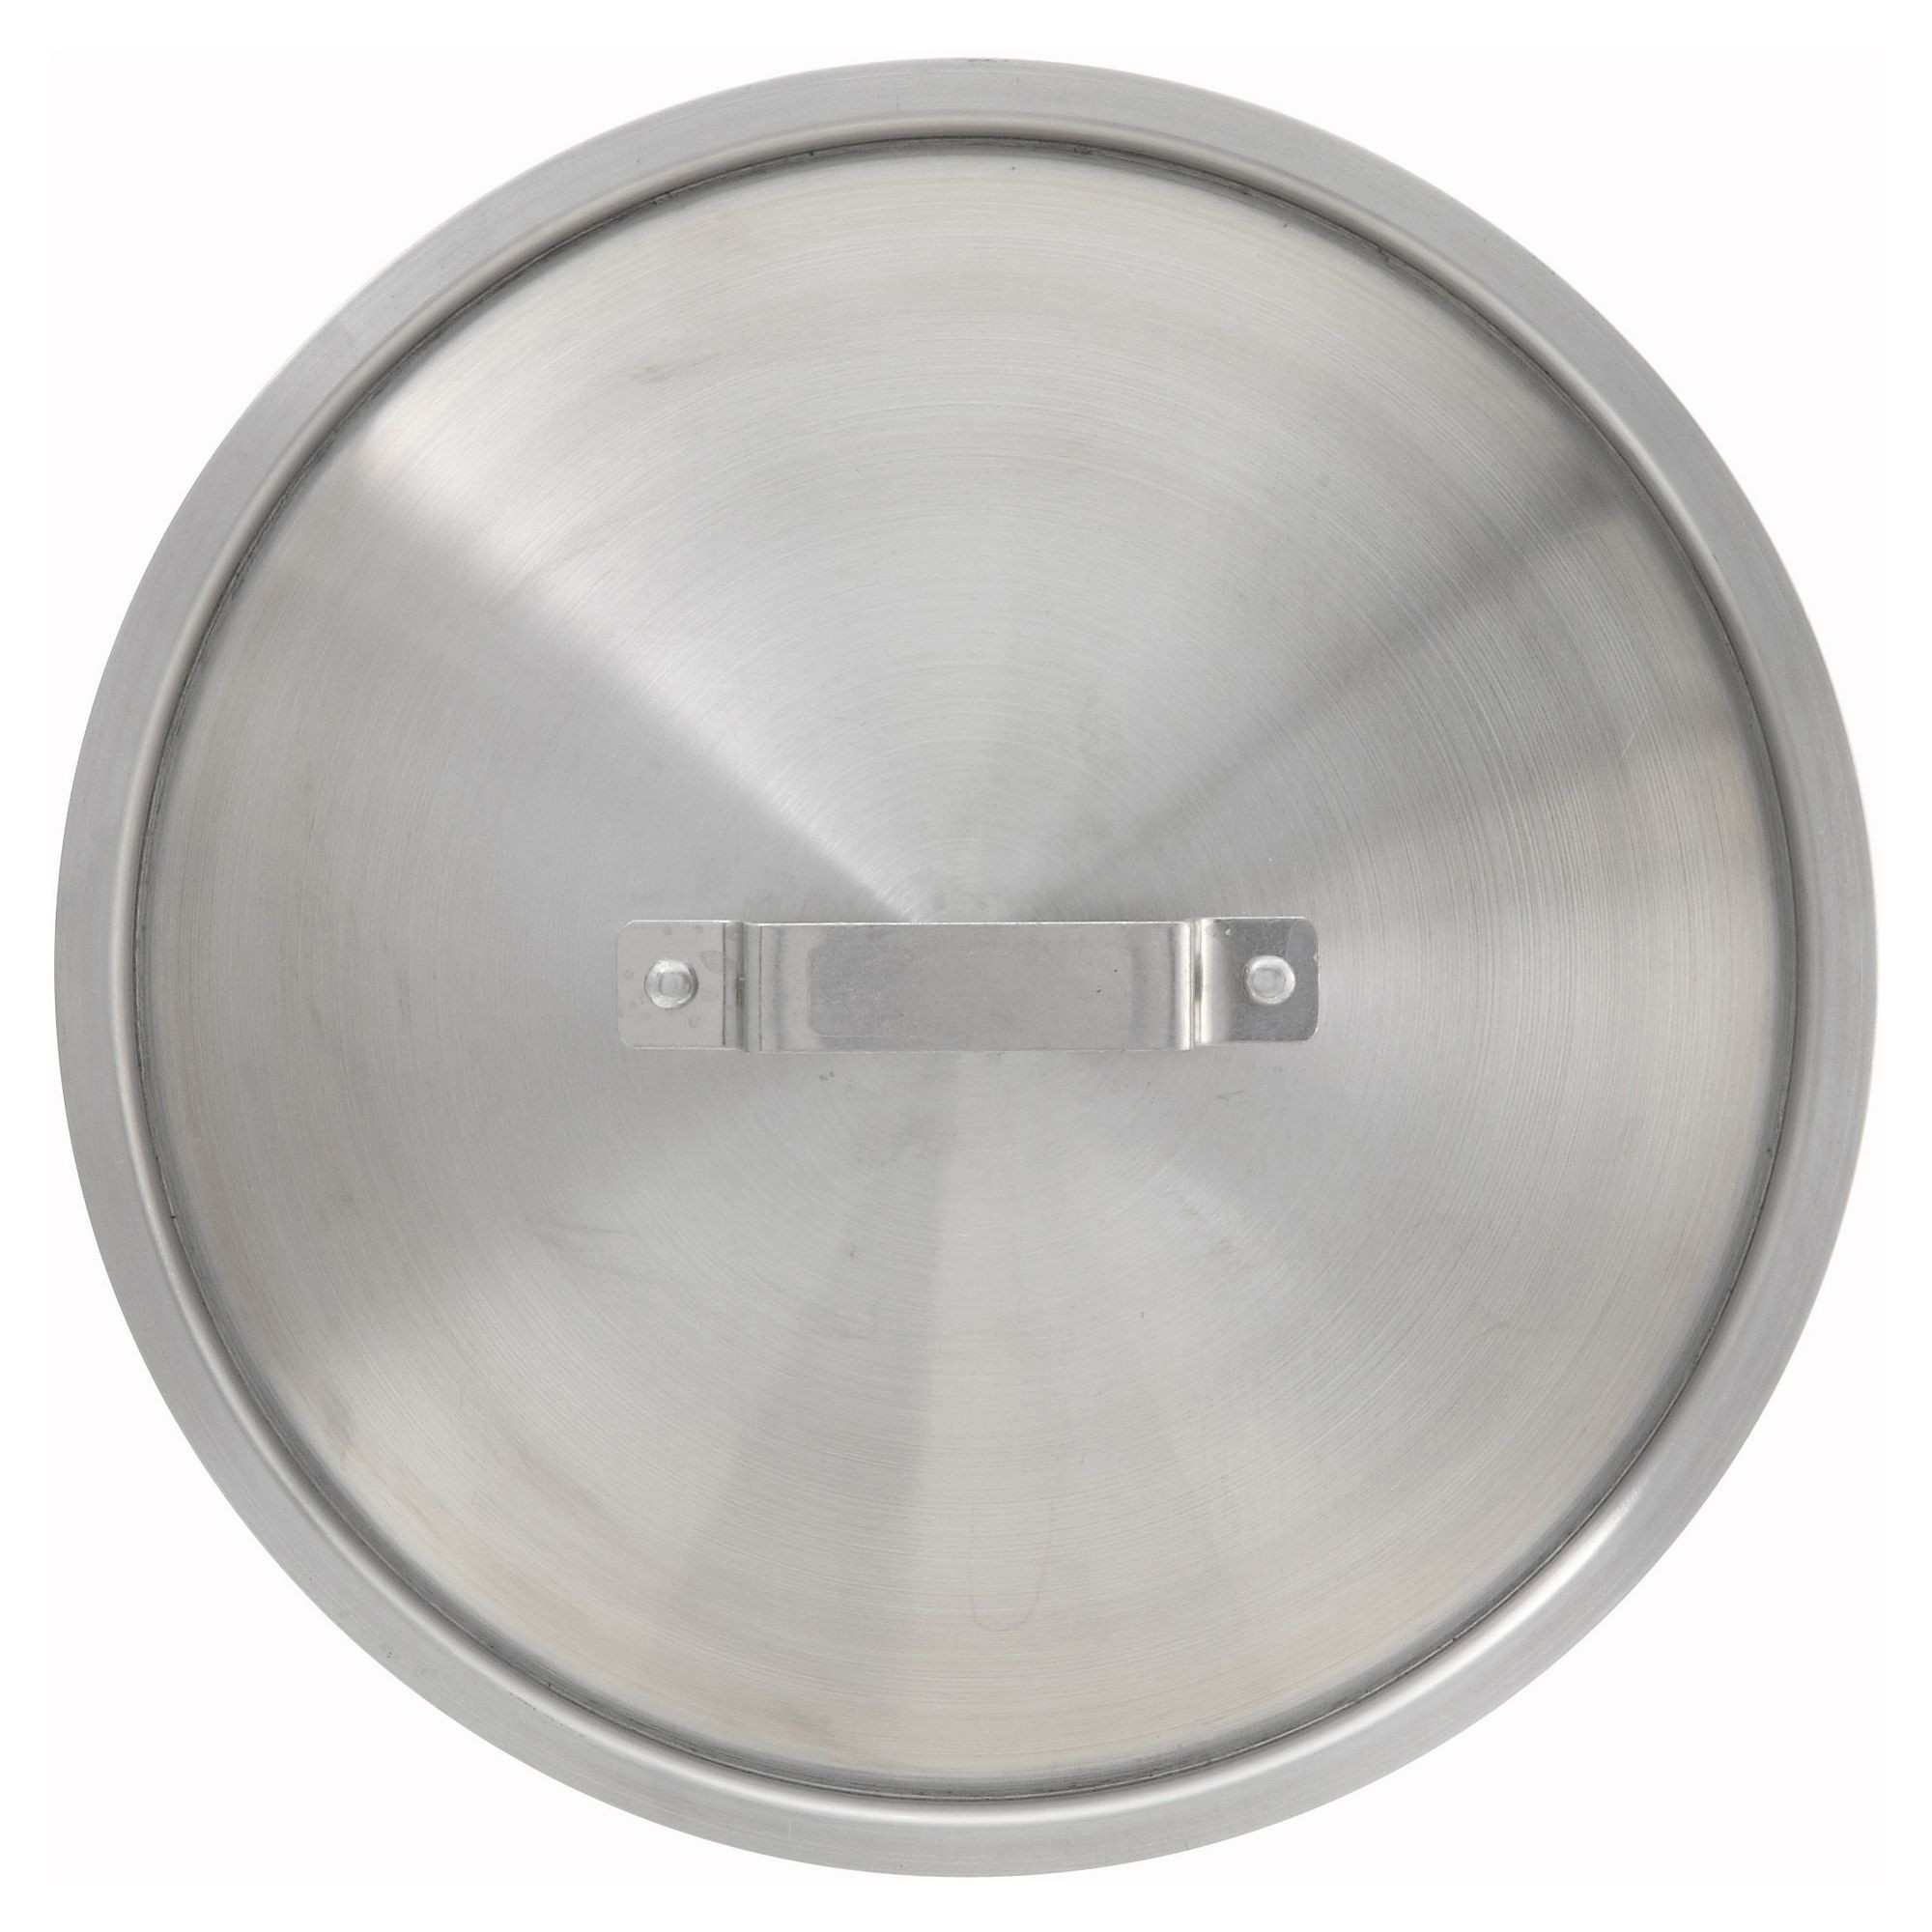 Winco AXS-32C Aluminum Pot Cover for AXAP-20, AXS-32, AXHA-20, AXHH-32